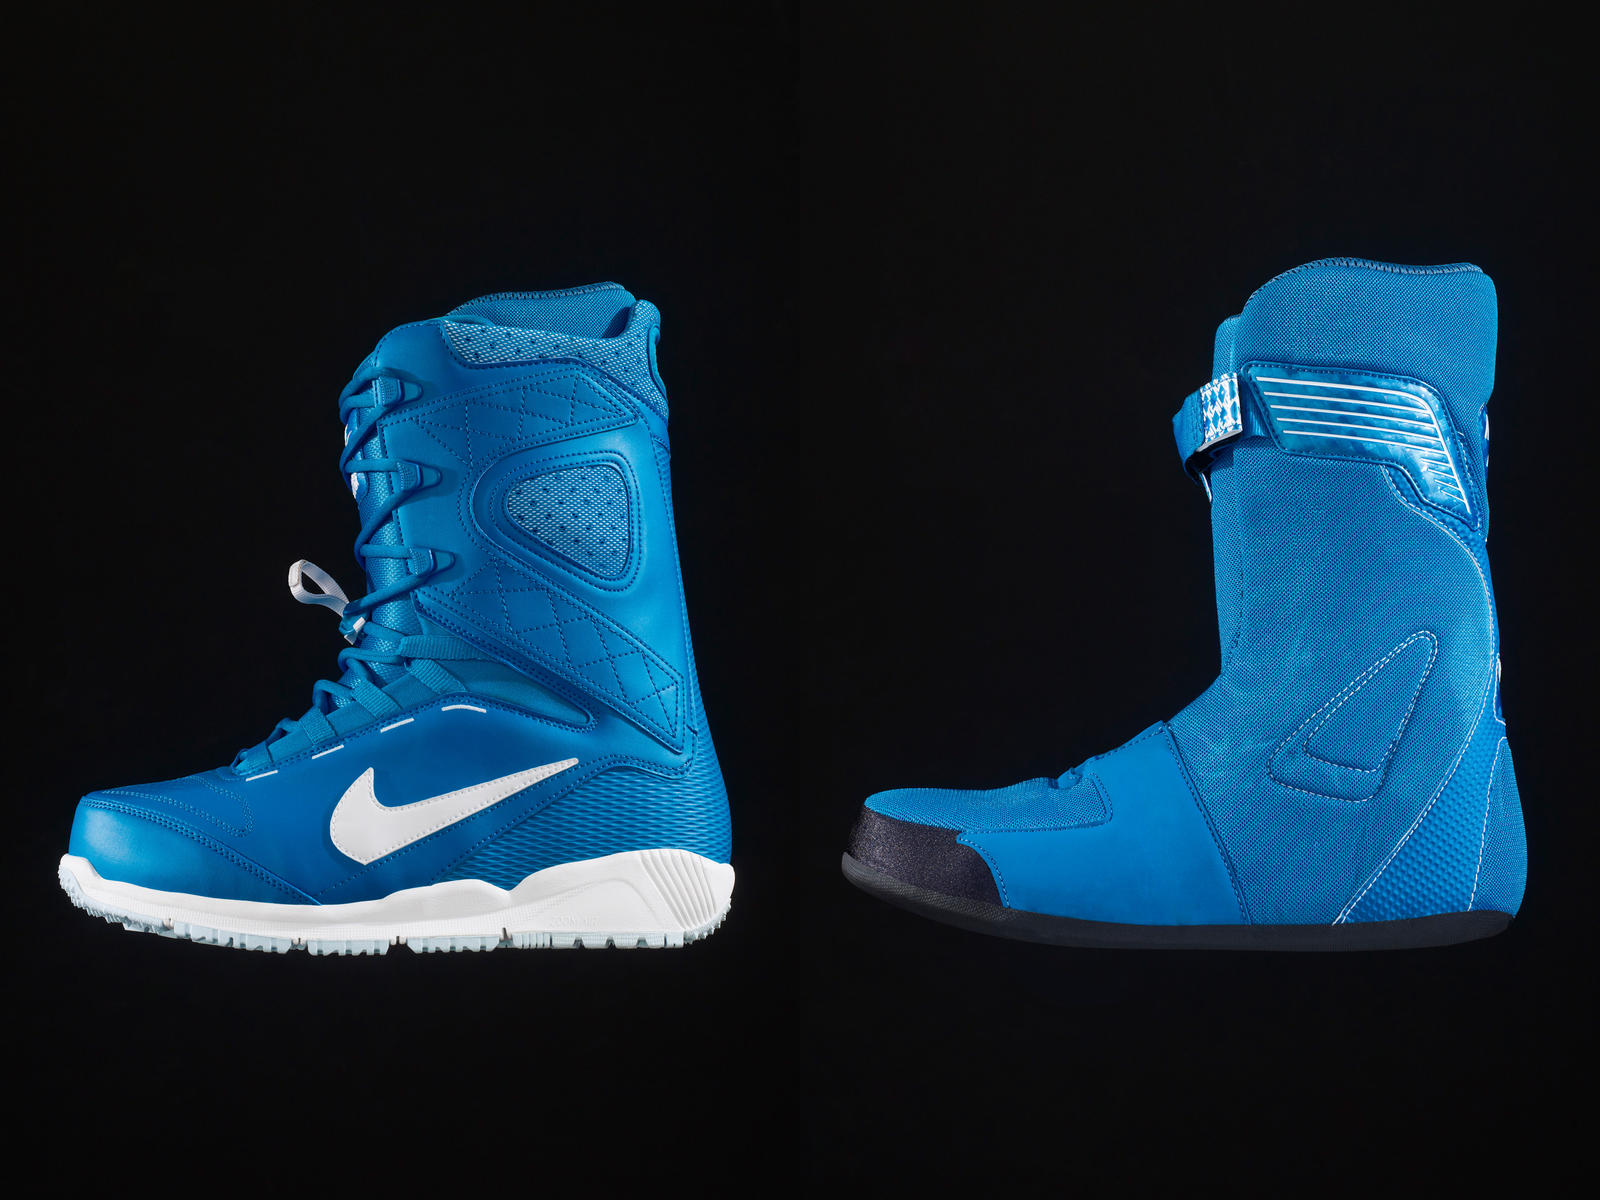 Nike Snowboard Shoes